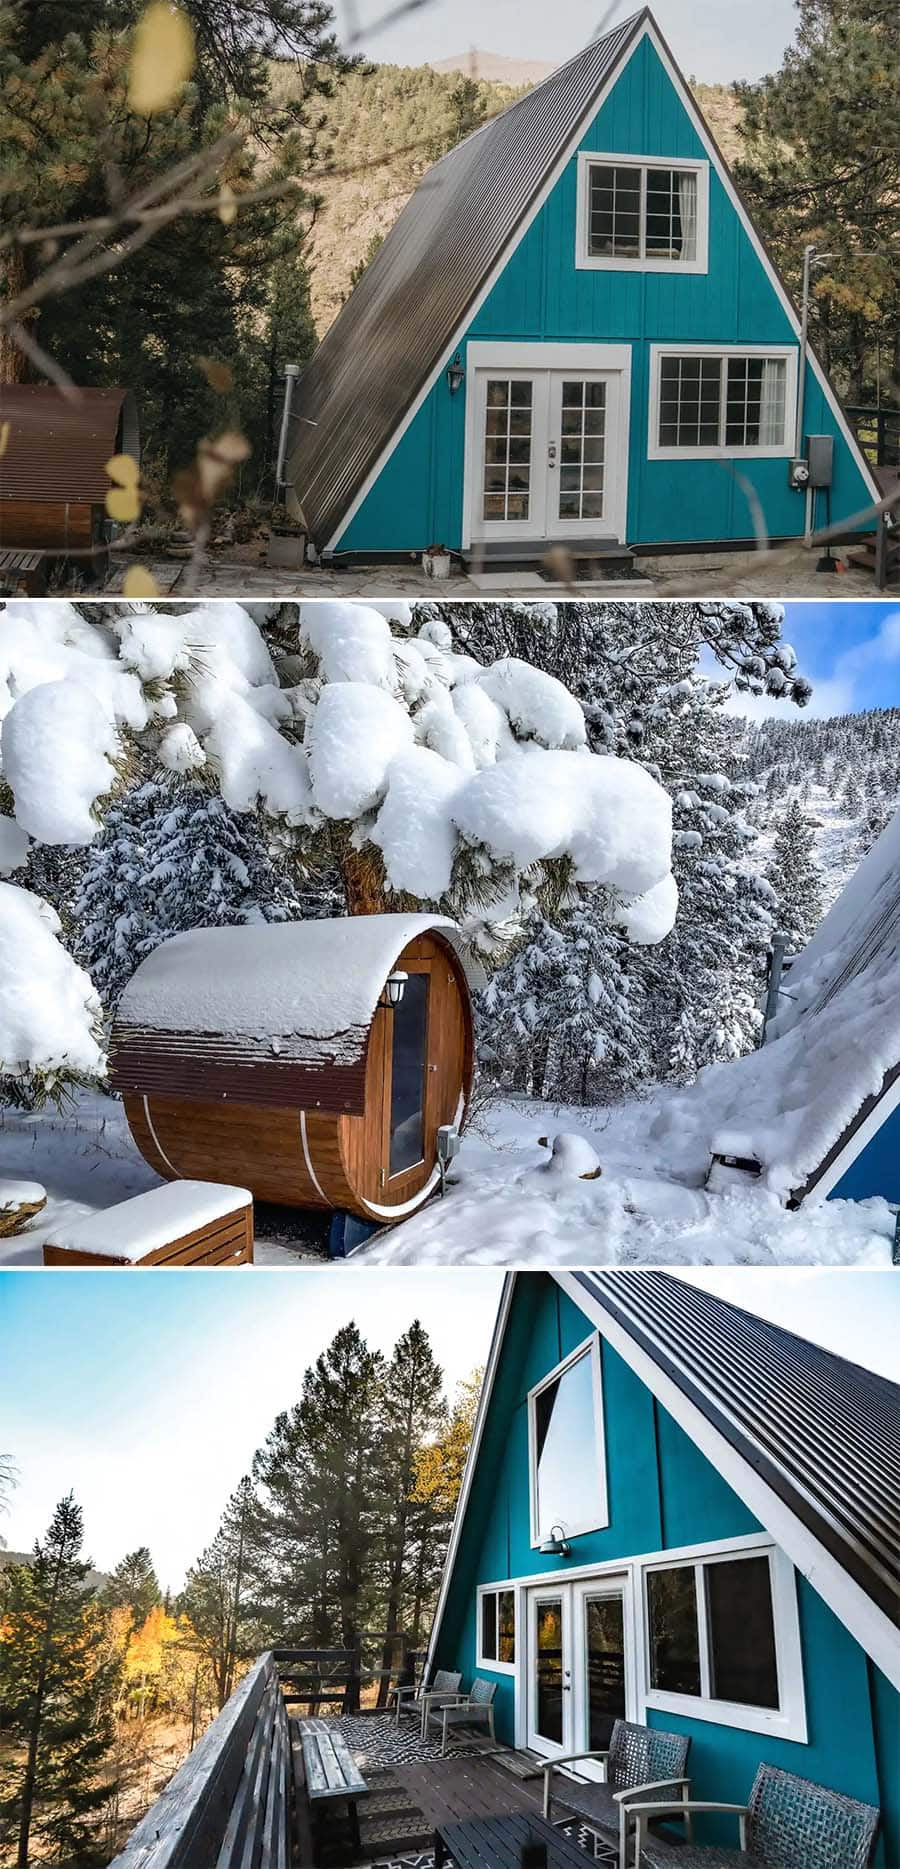 The Hygge Chalet Airbnb cabin in Grant, Colorado